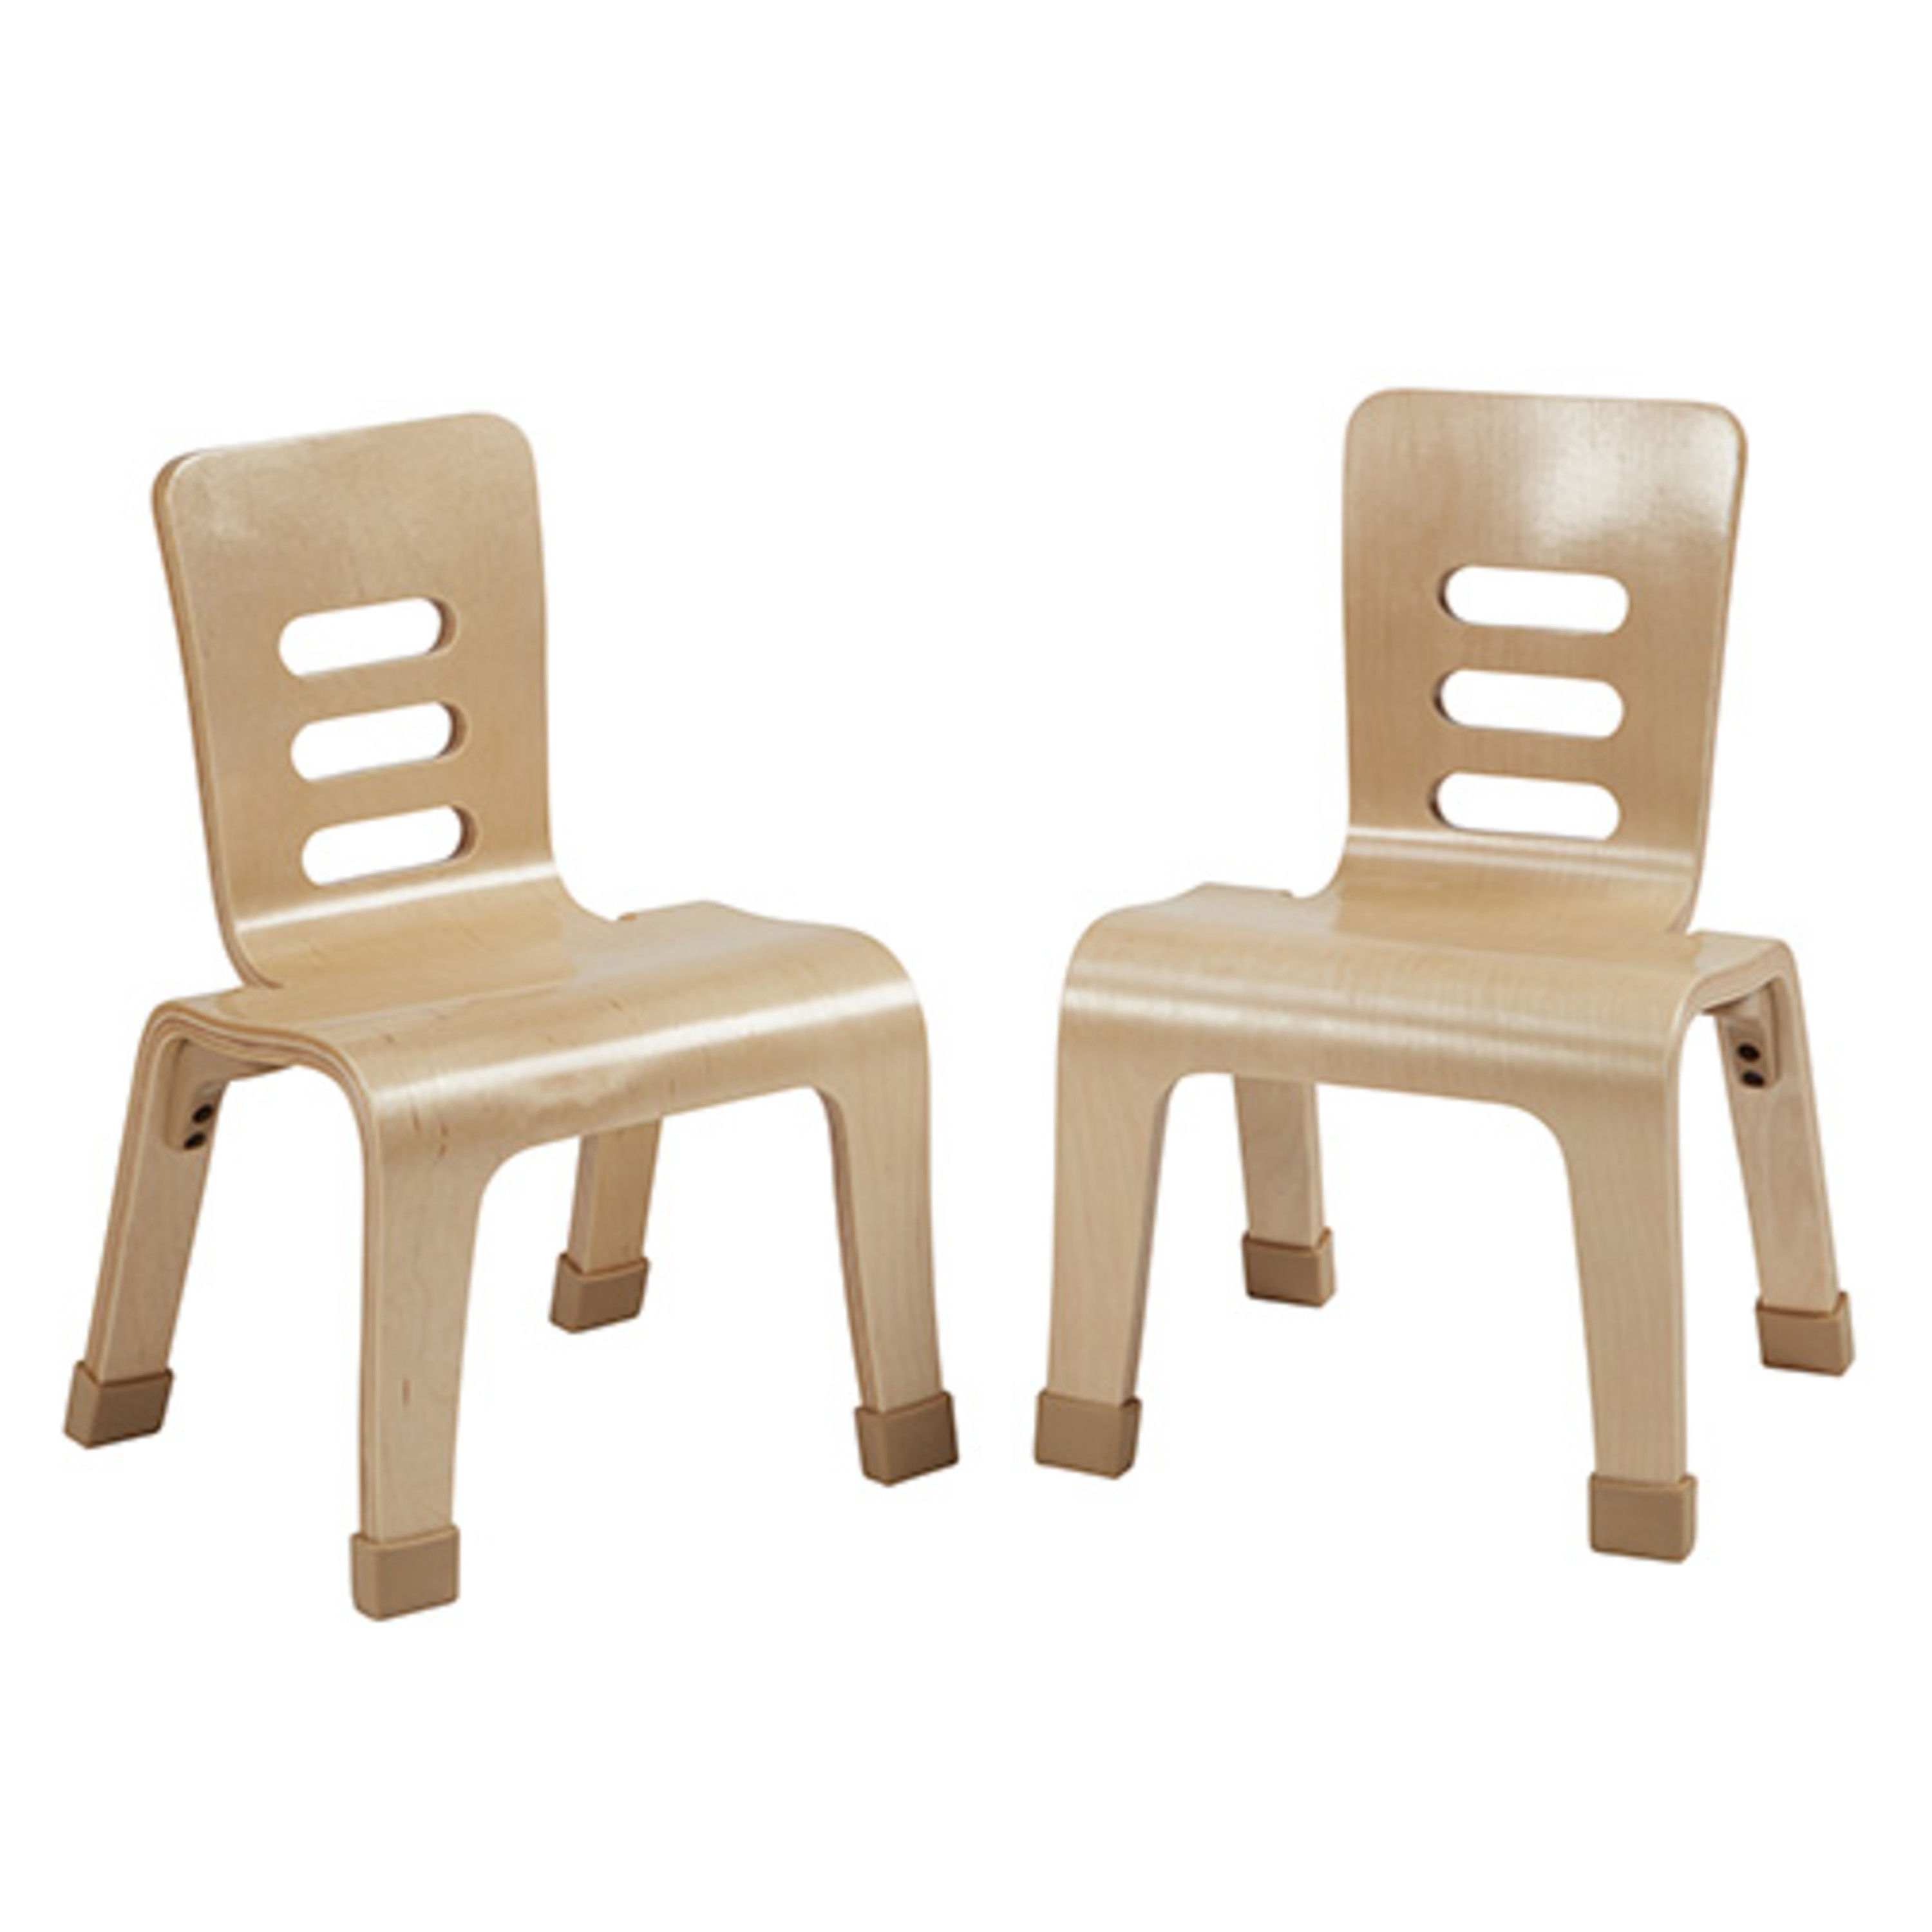 ECR4Kids 10in Bentwood Chair - Natural